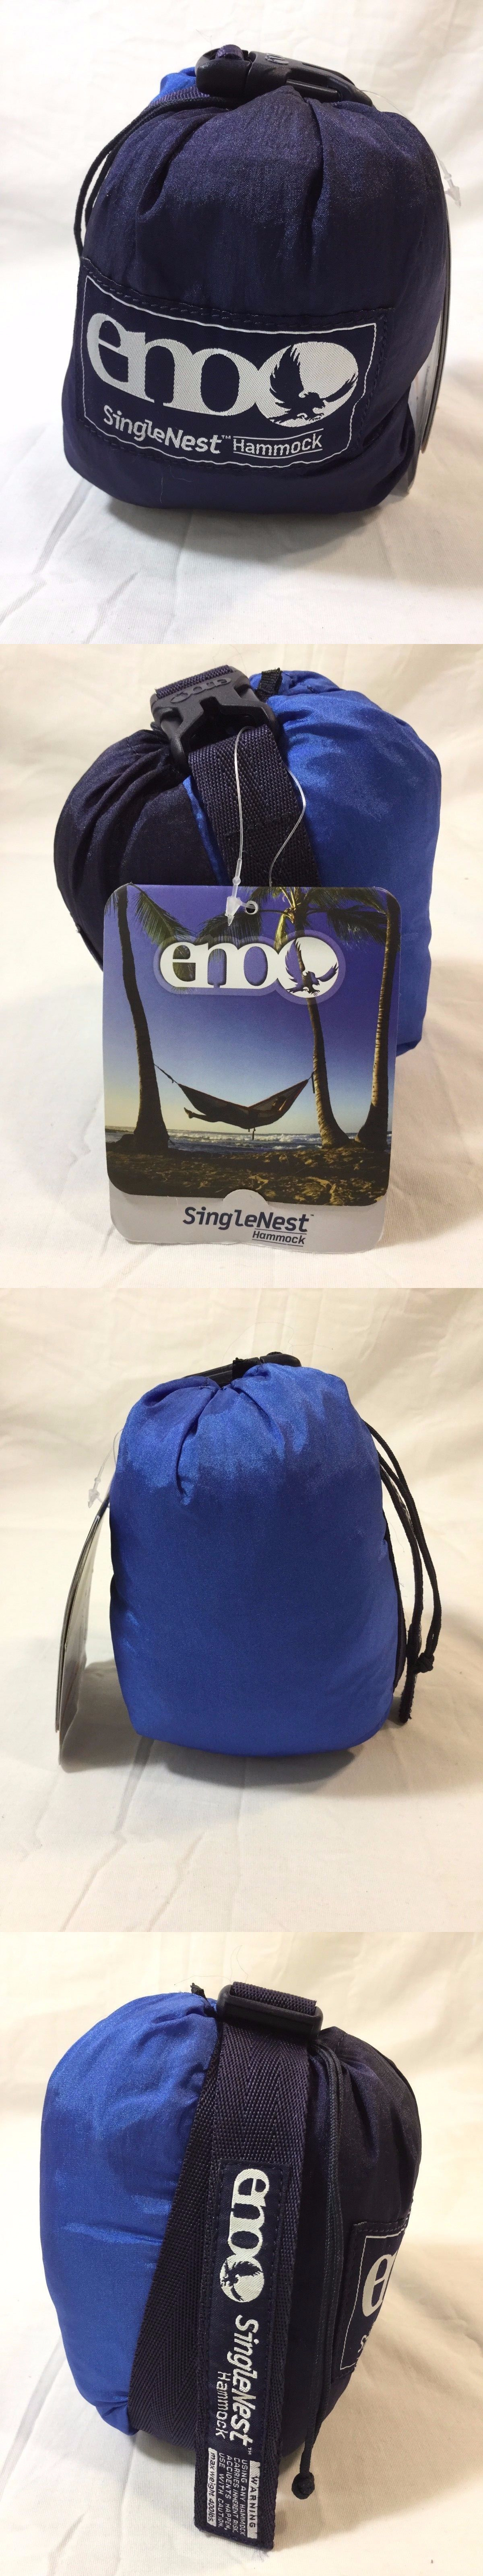 enos singlenest portable reviews straps doublenest directions hammock rain rei stand fly eno